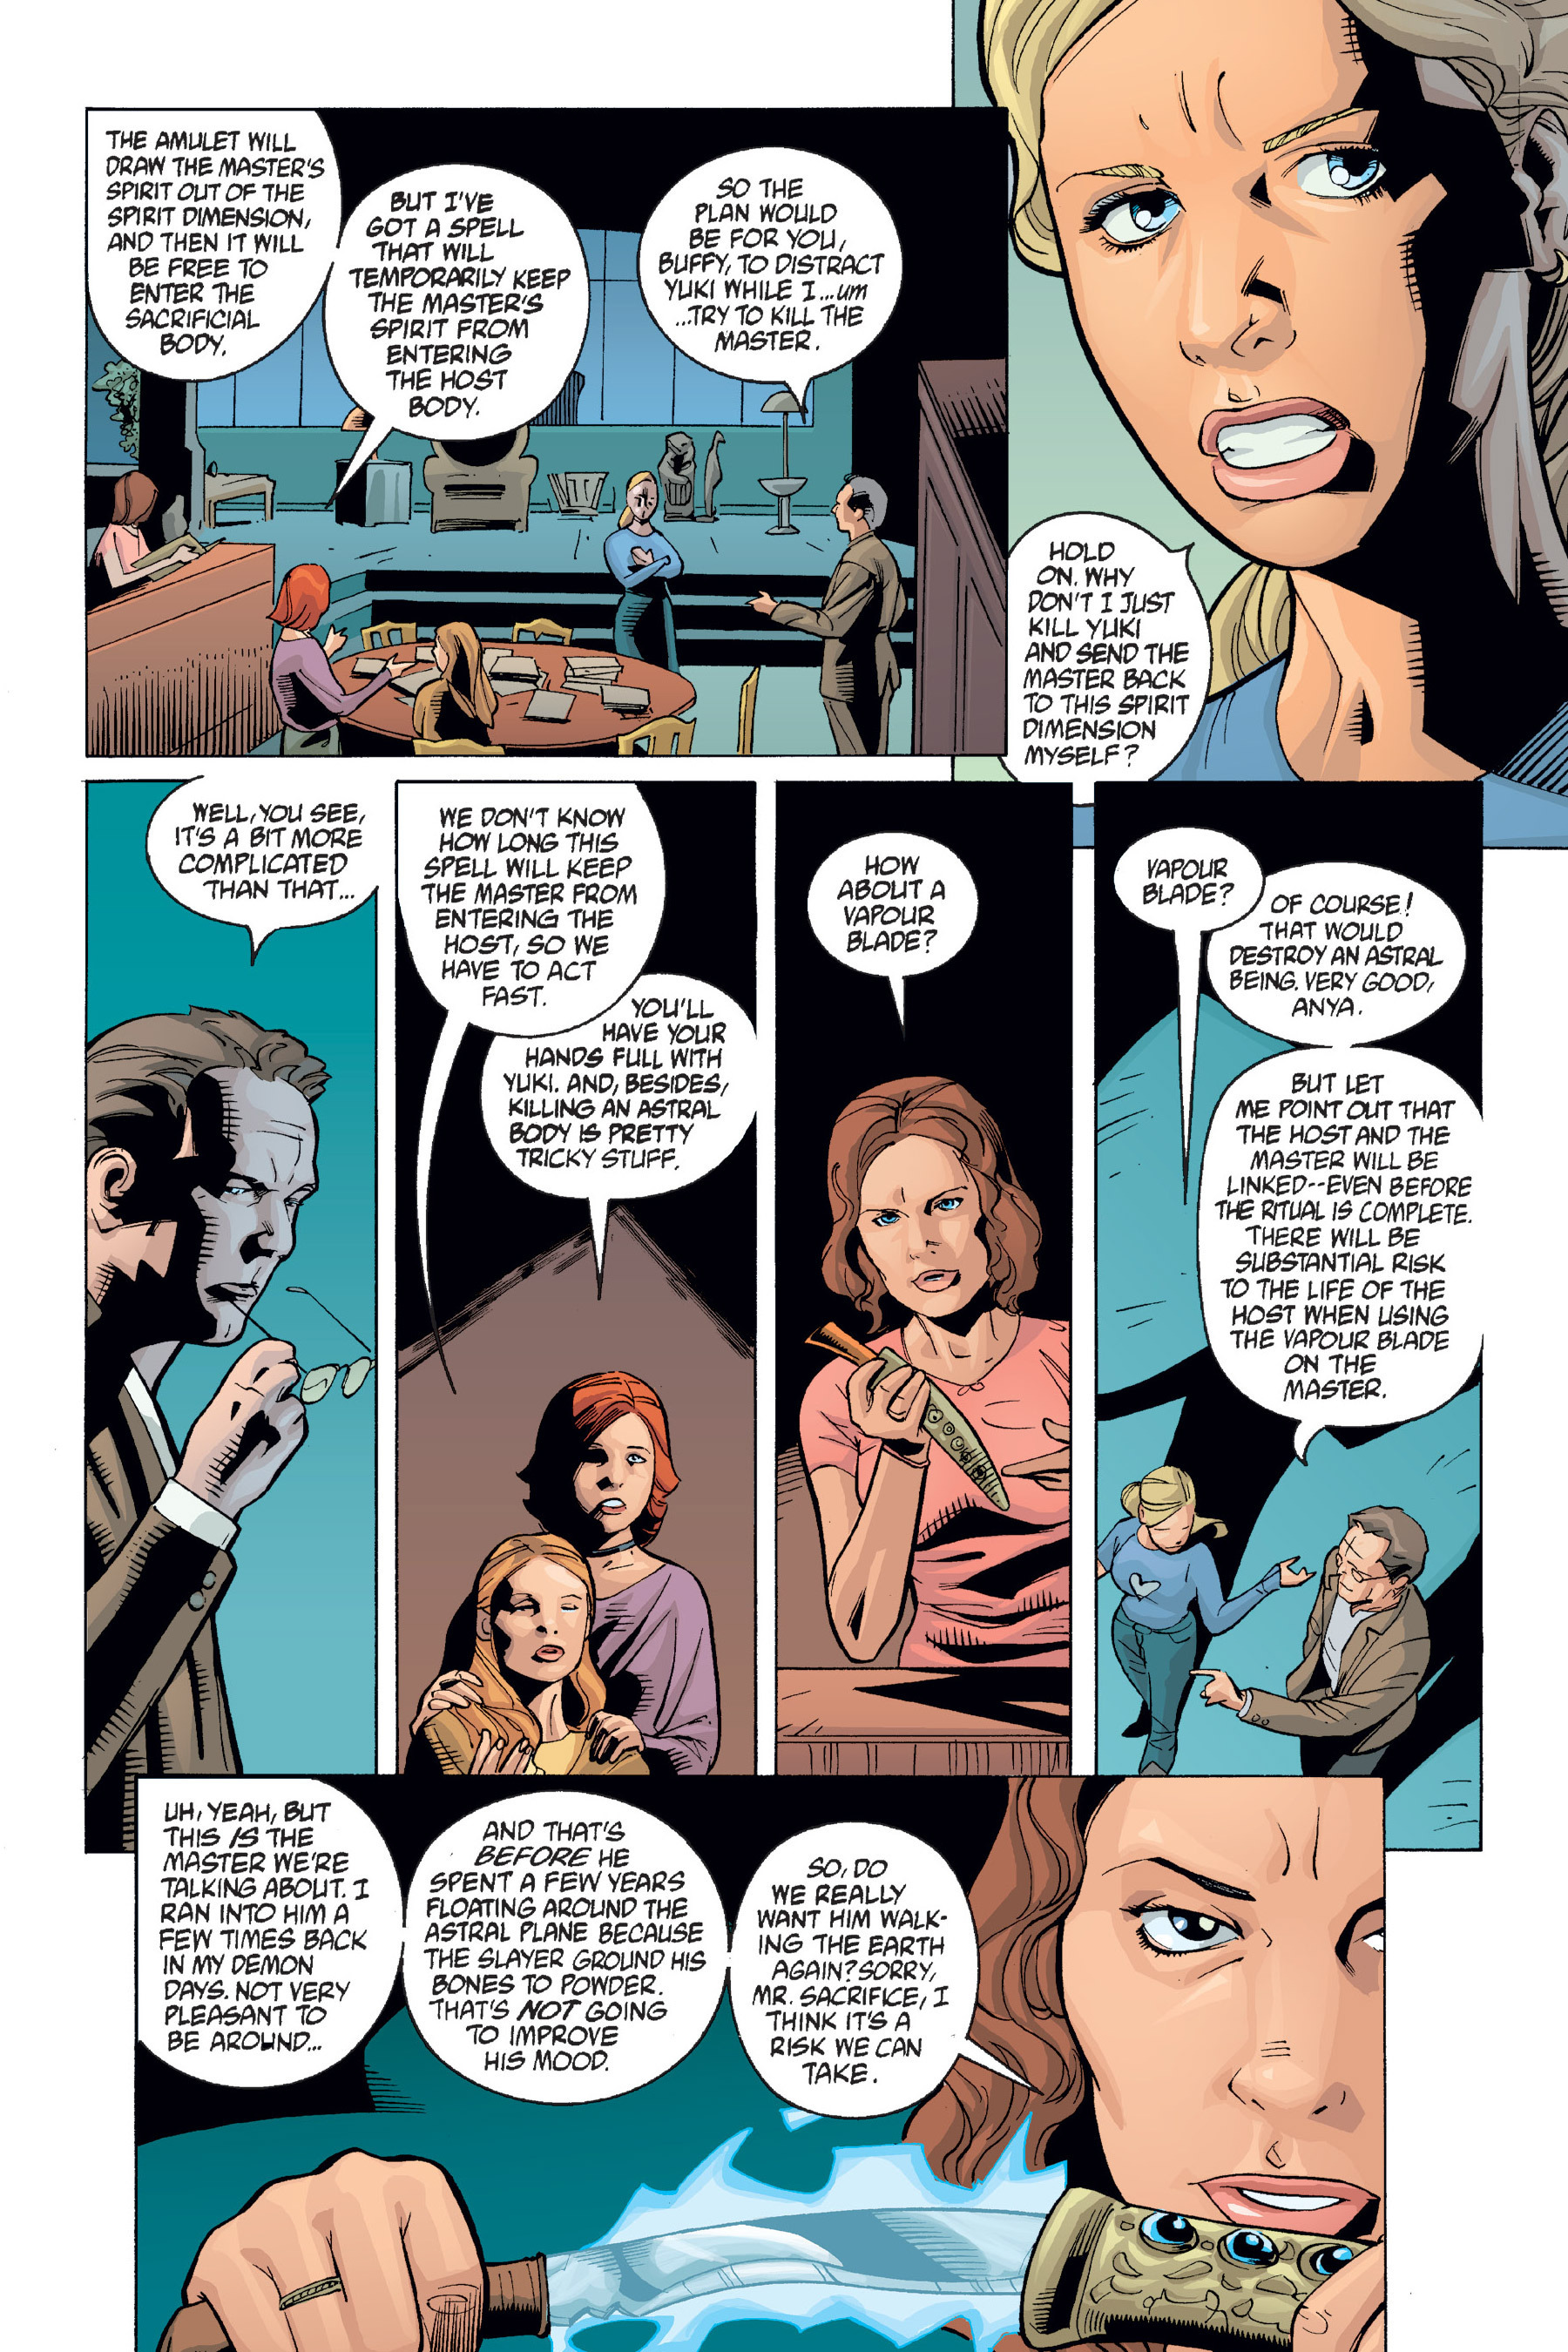 Read online Buffy the Vampire Slayer: Omnibus comic -  Issue # TPB 6 - 373